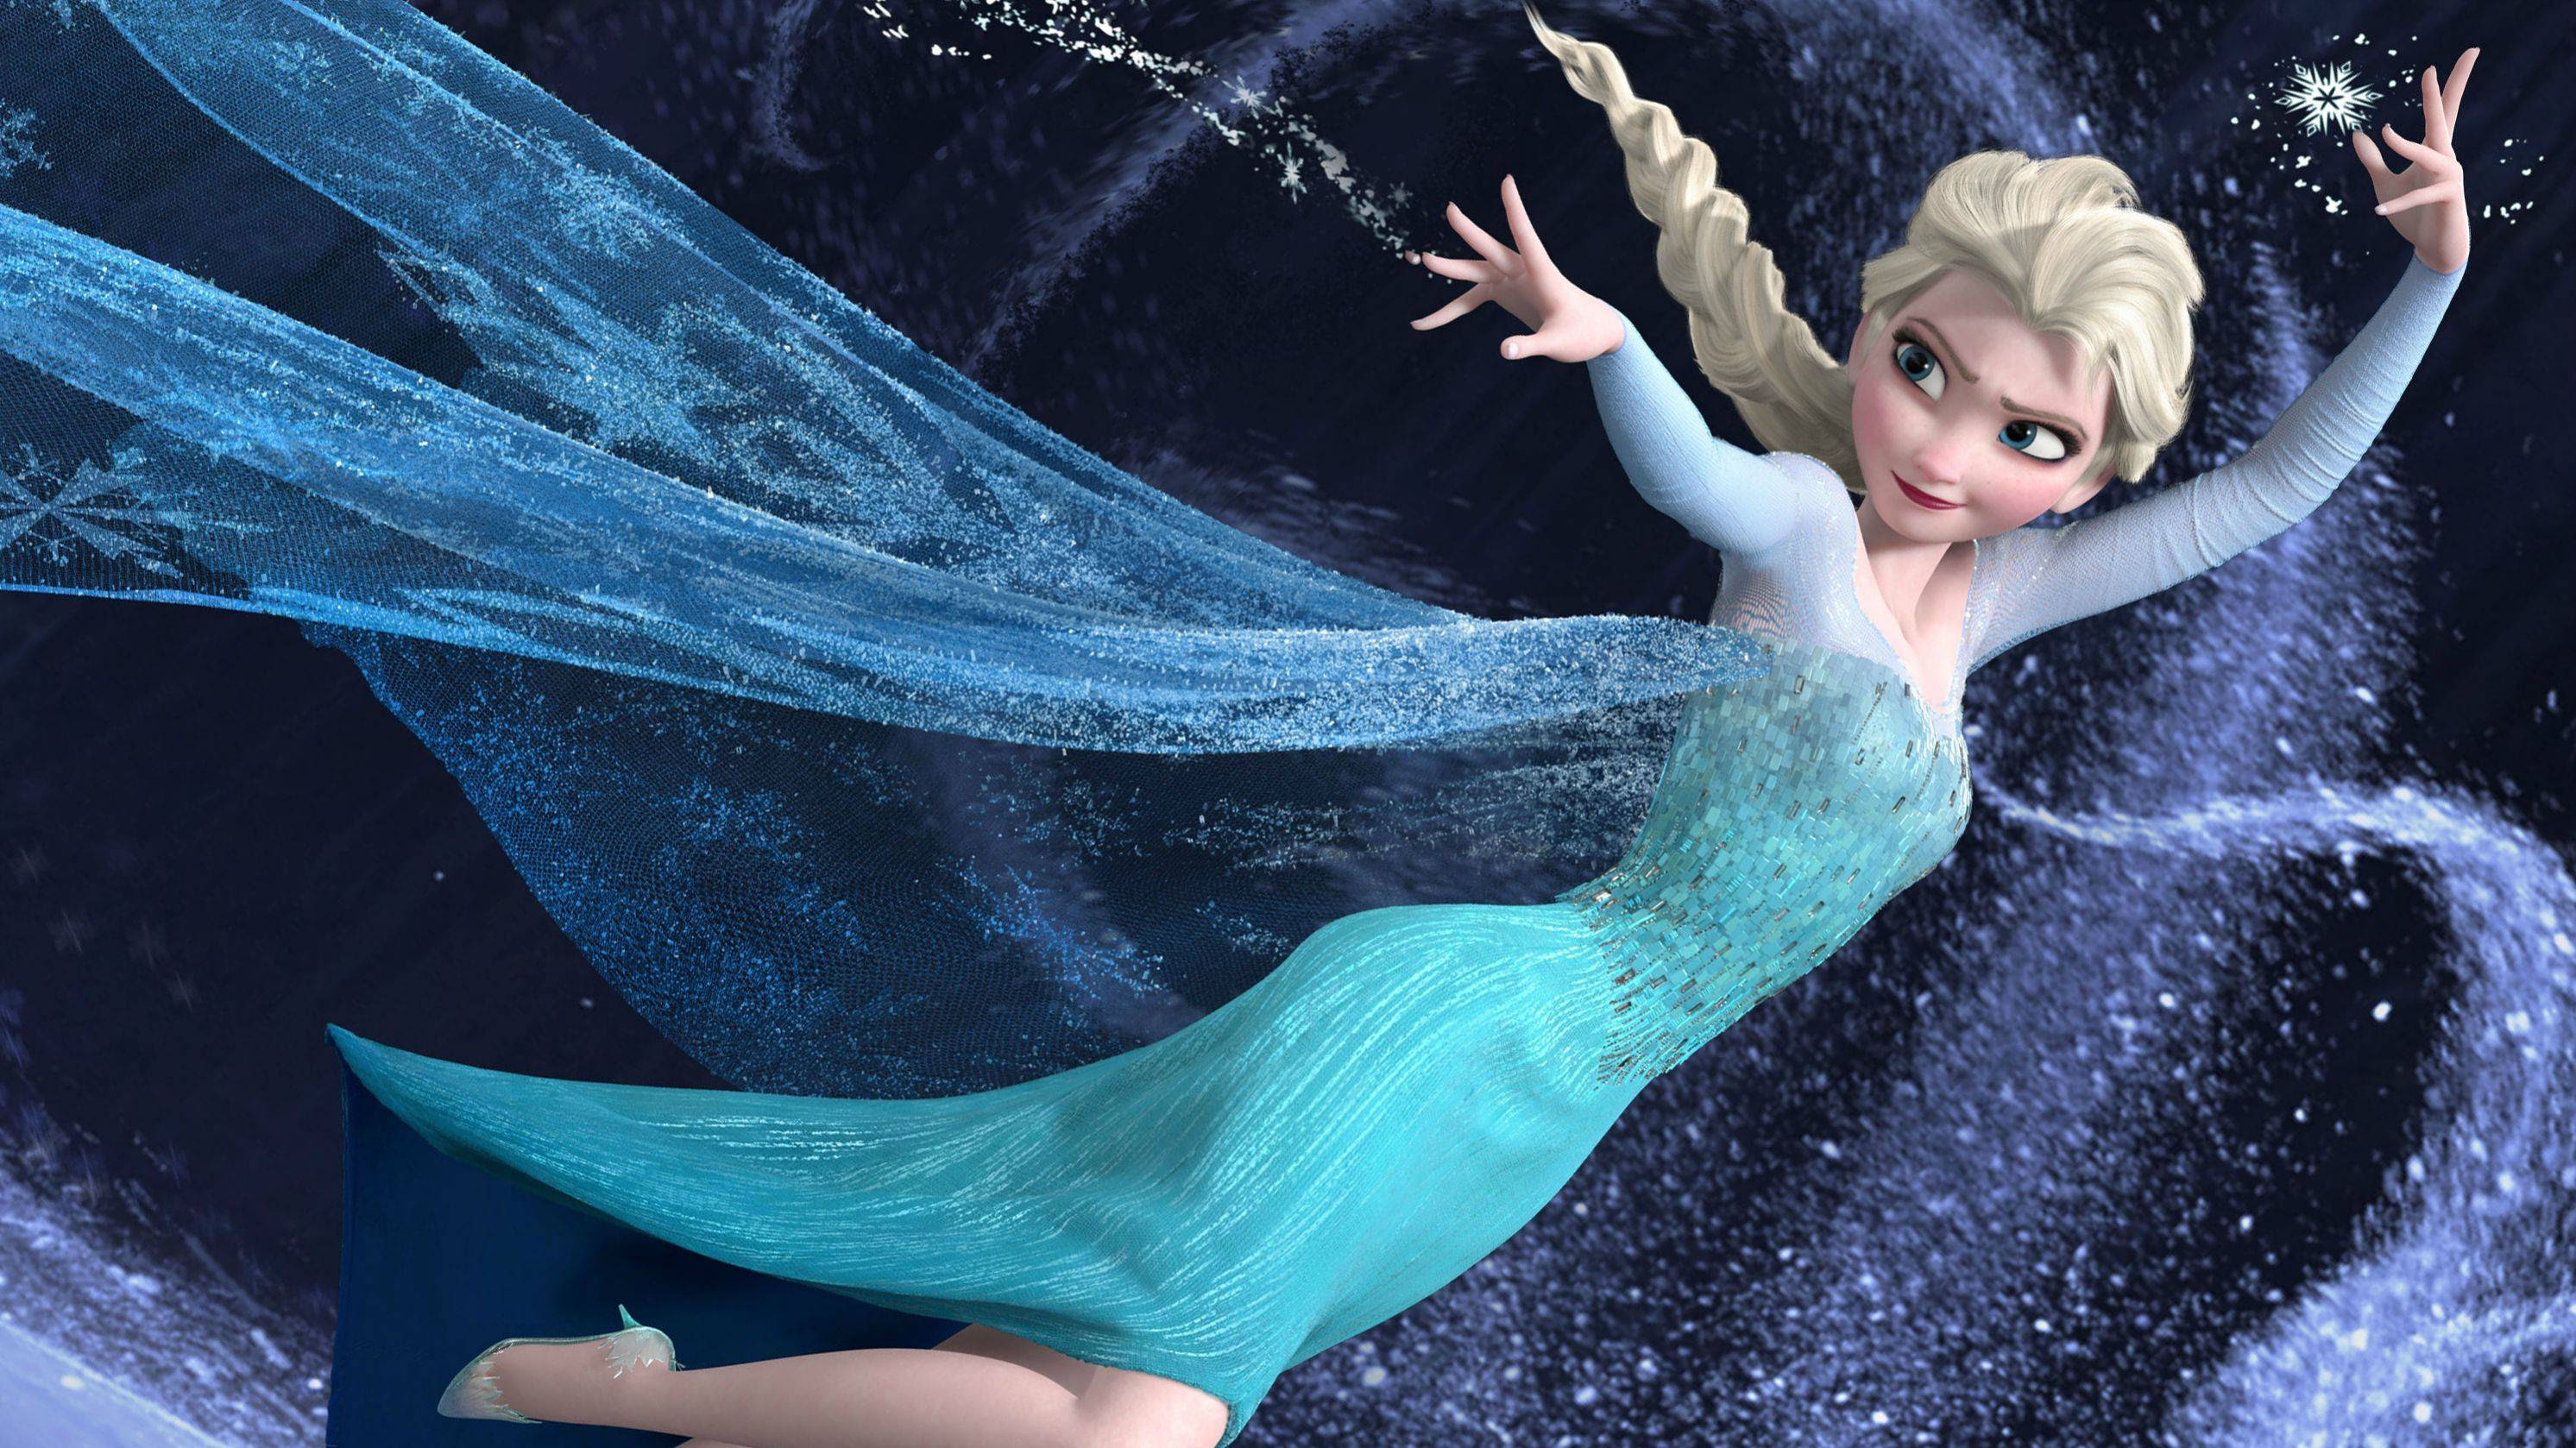 This Is The Best Elsa 1080p Wallpaper I Found From Disney S Frozen